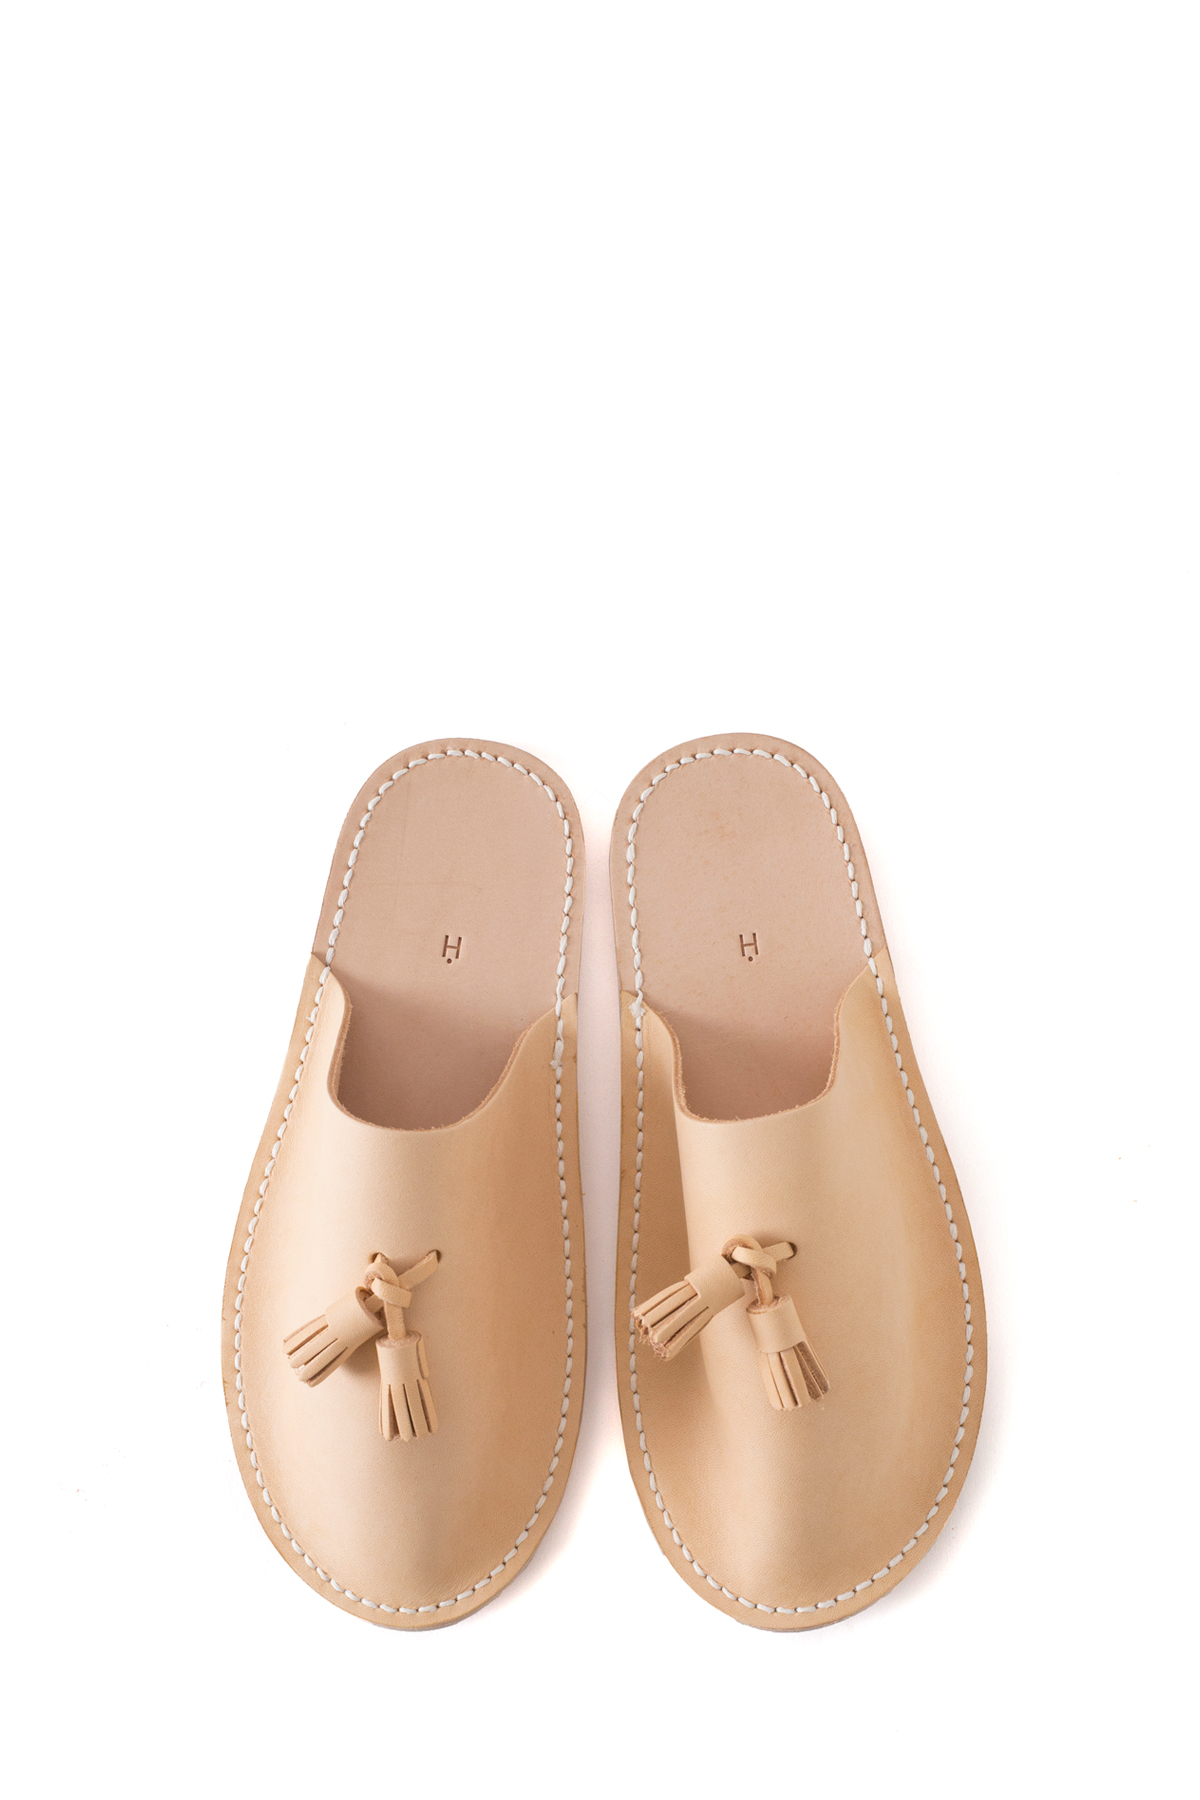 Hender Scheme : Leather Slipper (Natural)